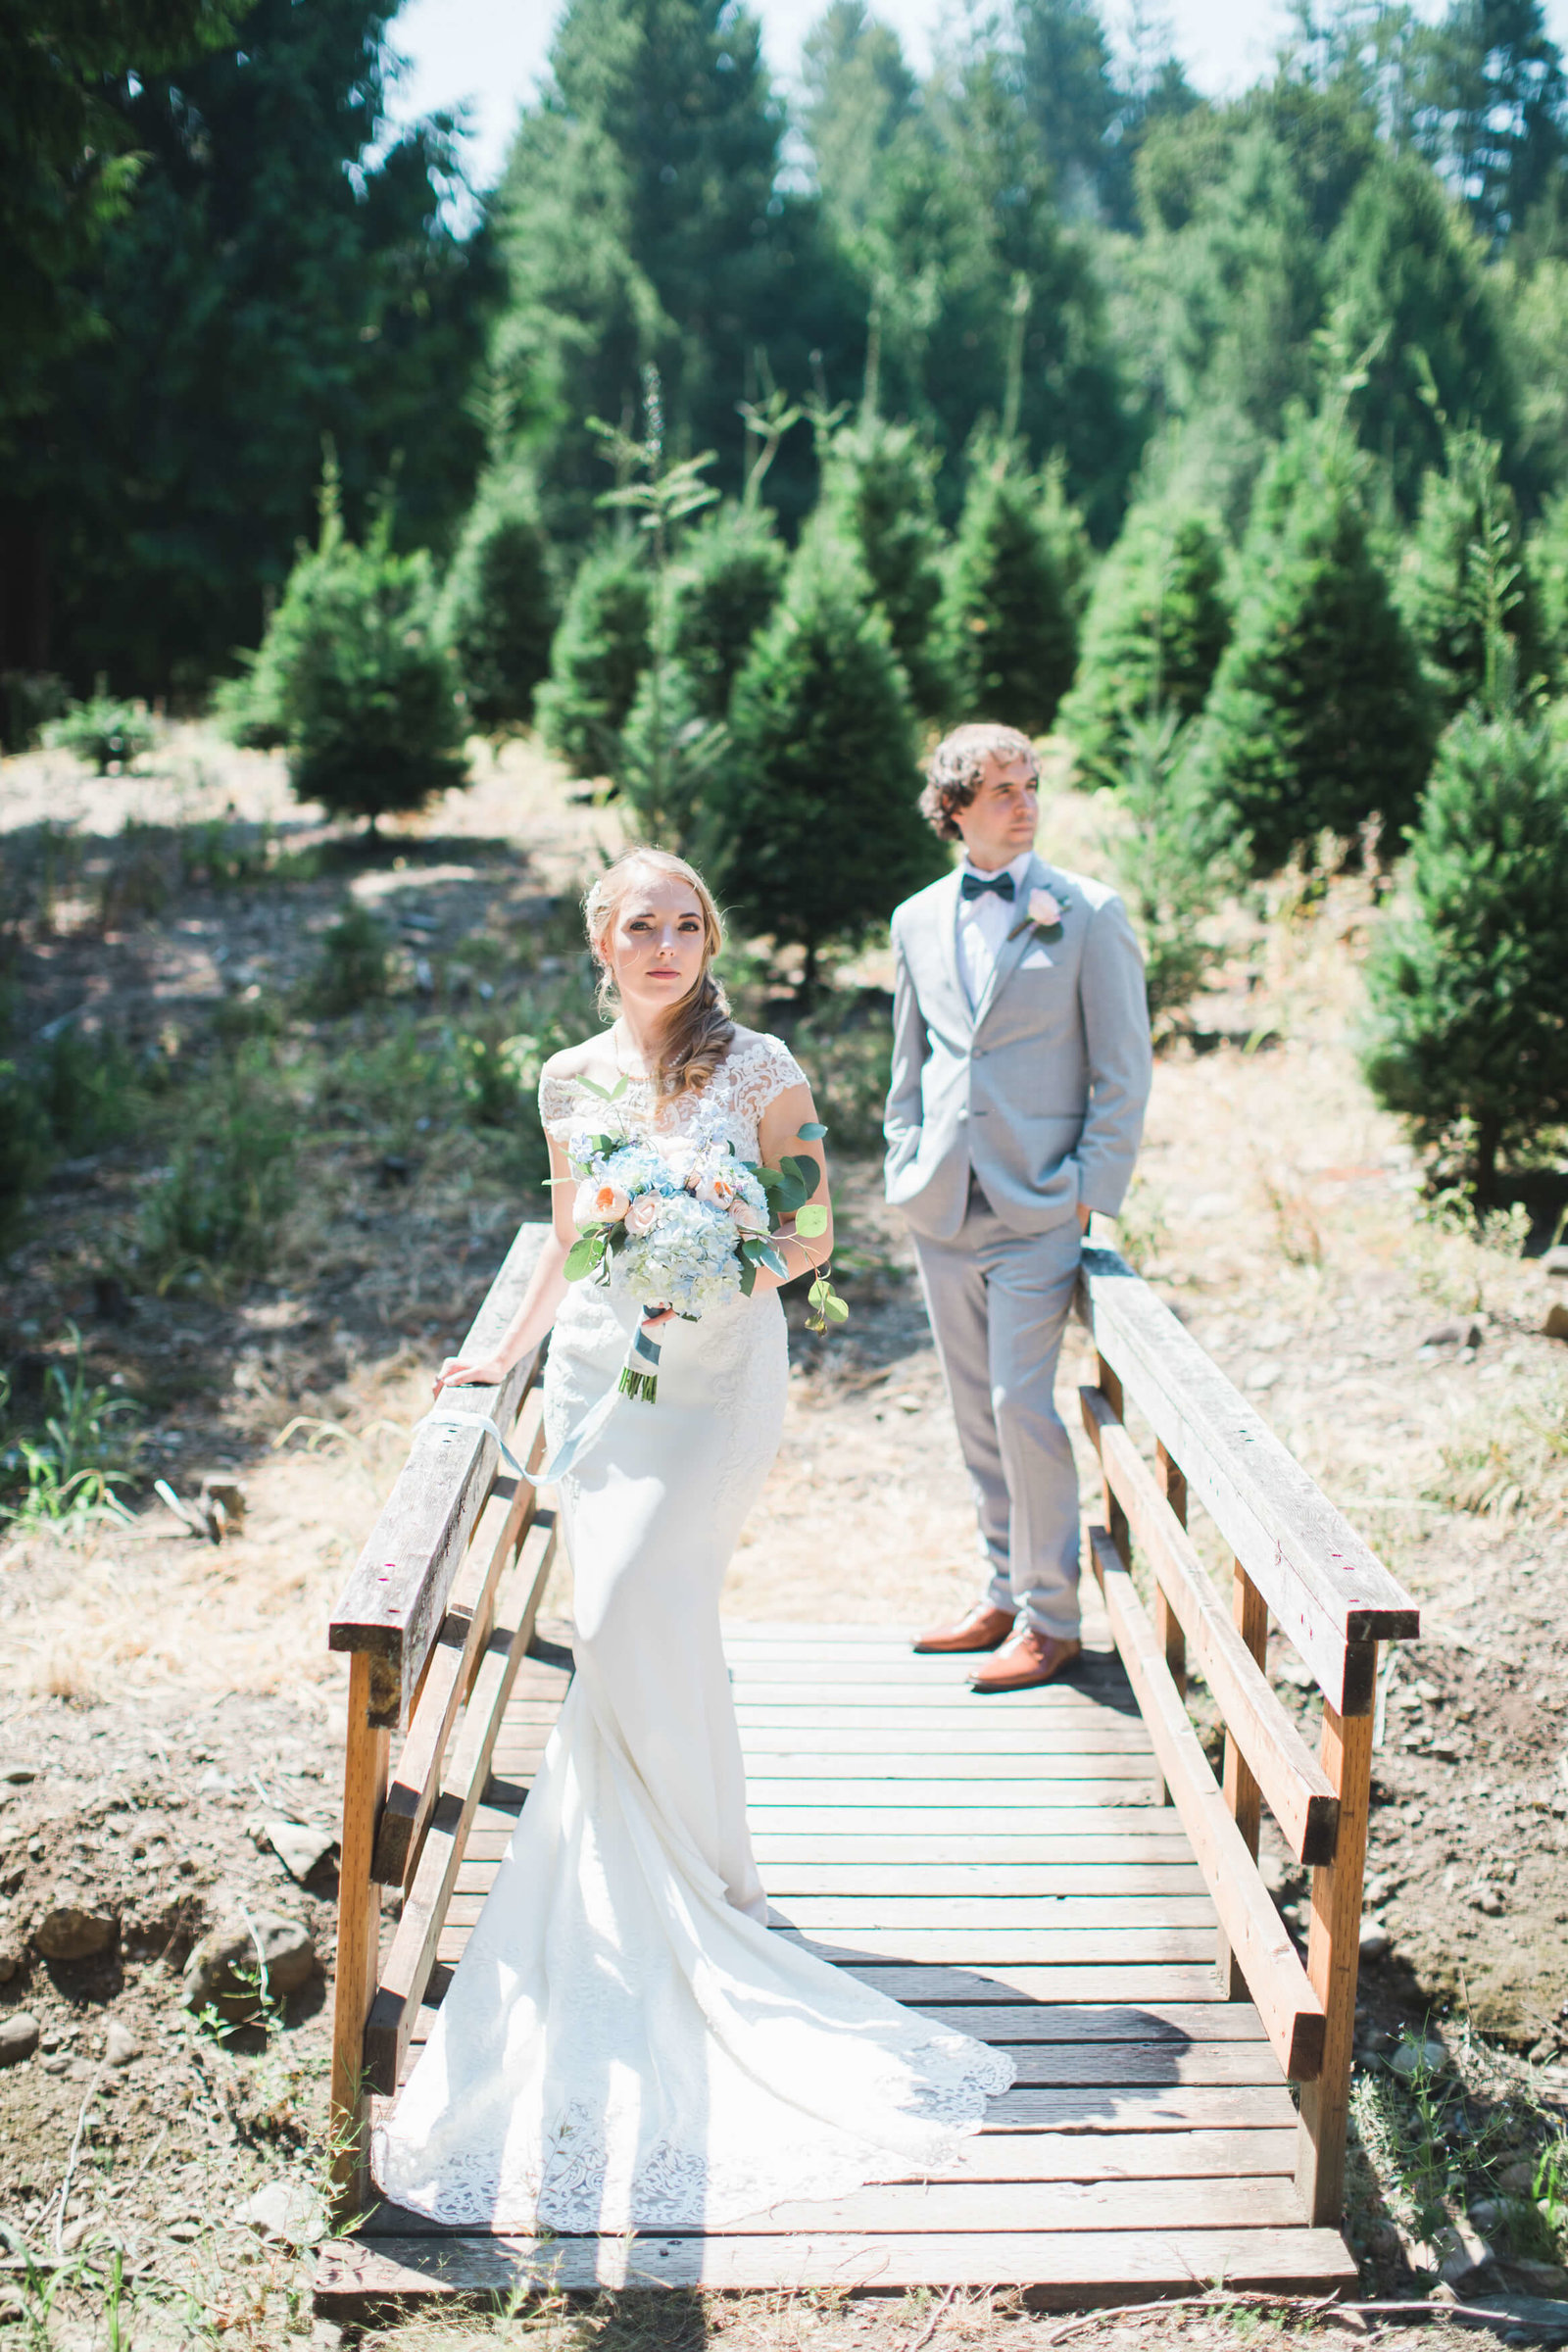 Trinity-tree-farm-wedding-photos-by-Adina-Preston-Photography-2019-108